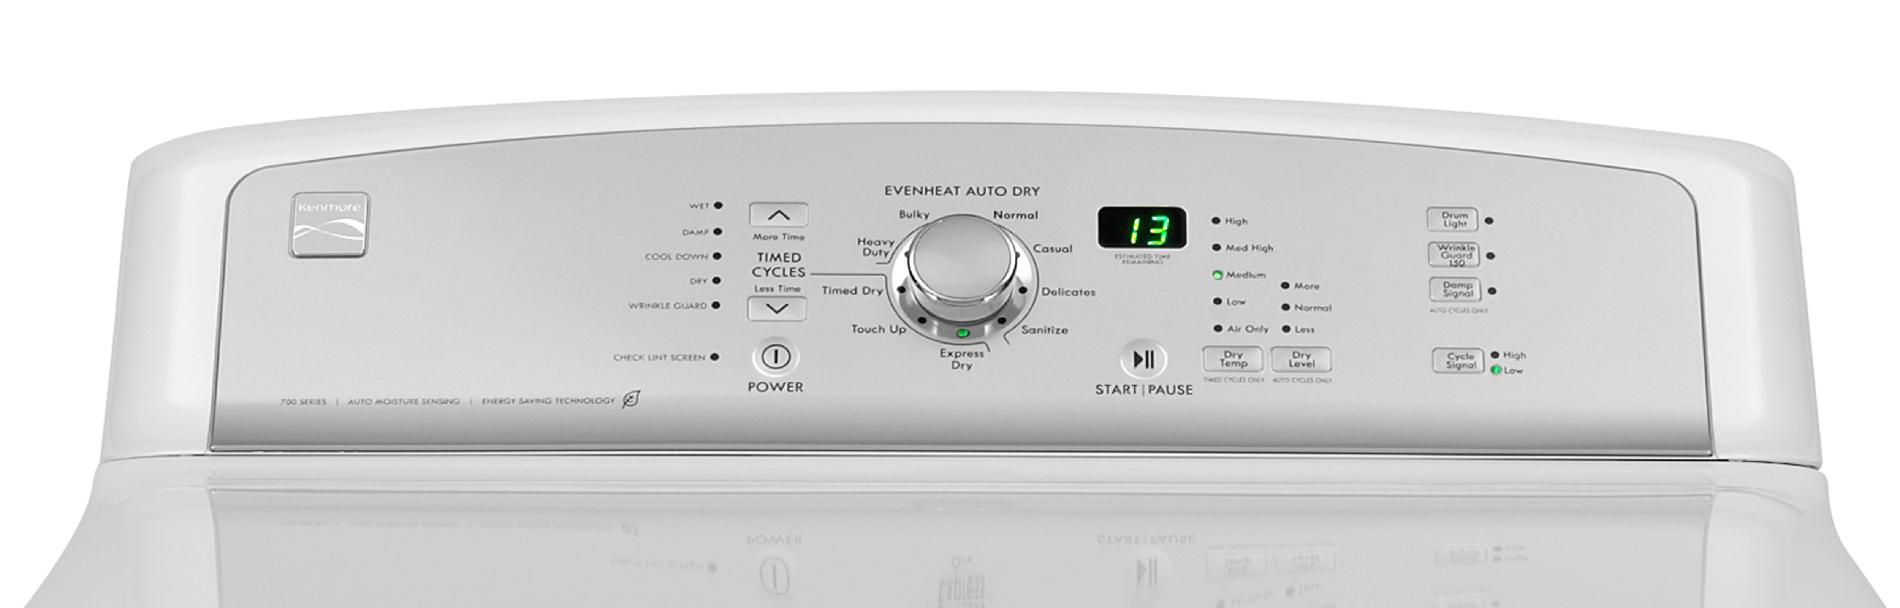 Kenmore 7.6 cu. ft. Electric Dryer w/ Sanitize Cycle - White